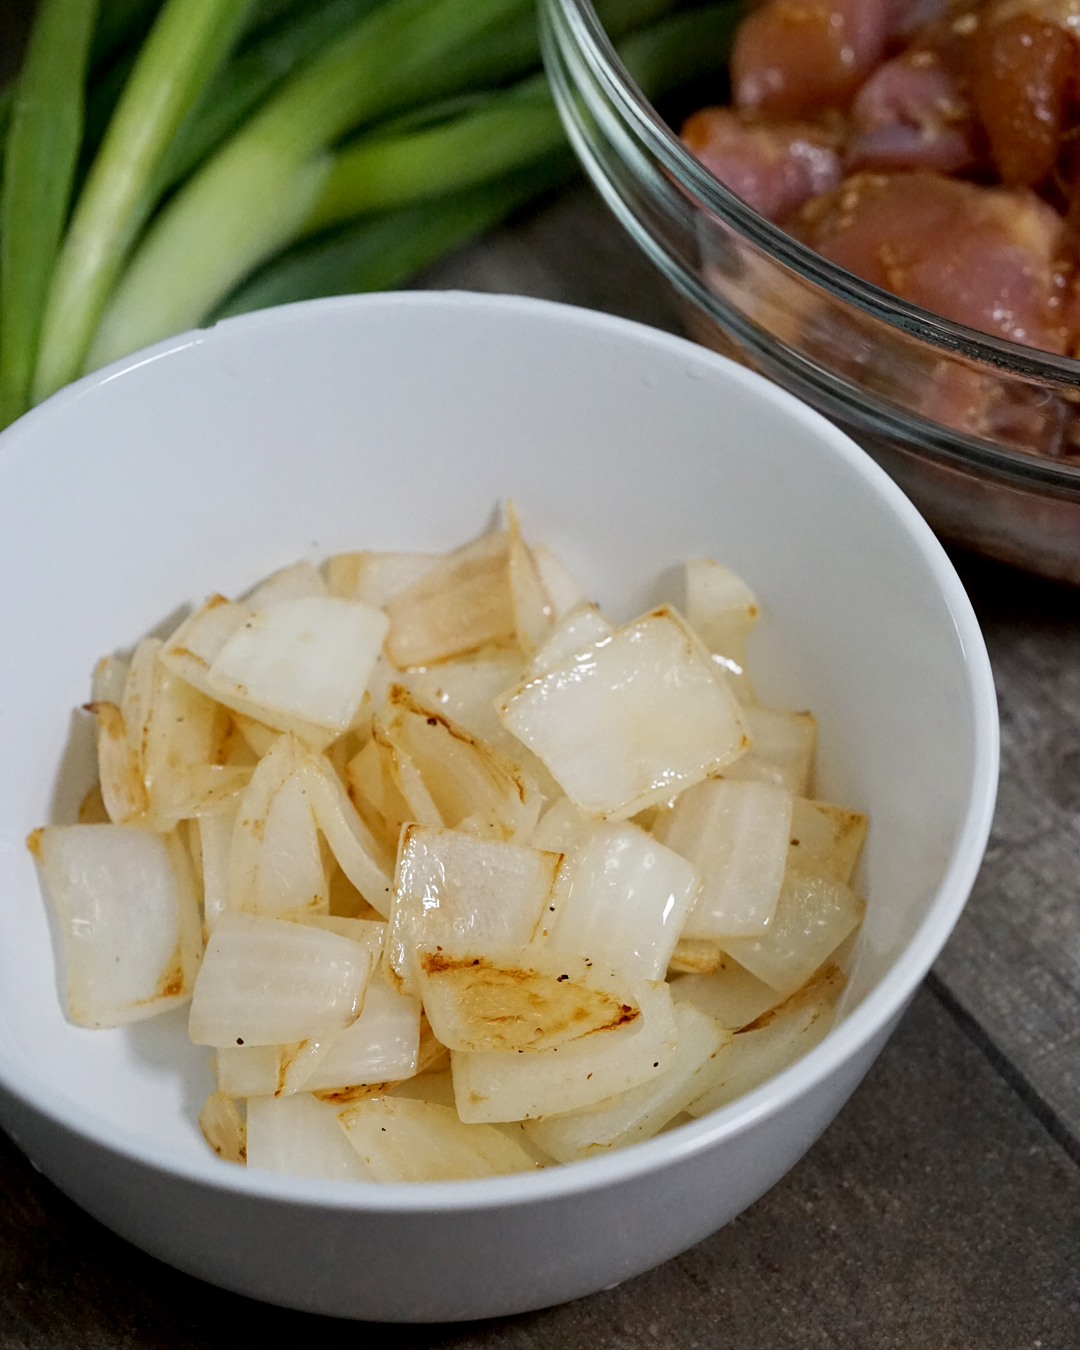 "Chop the onions into 1/2"" pieces. Heat a large pan over medium heat. Saute the onions in olive oil, seasoning with salt and pepper until almost translucent. Remove from the pan and place aside."